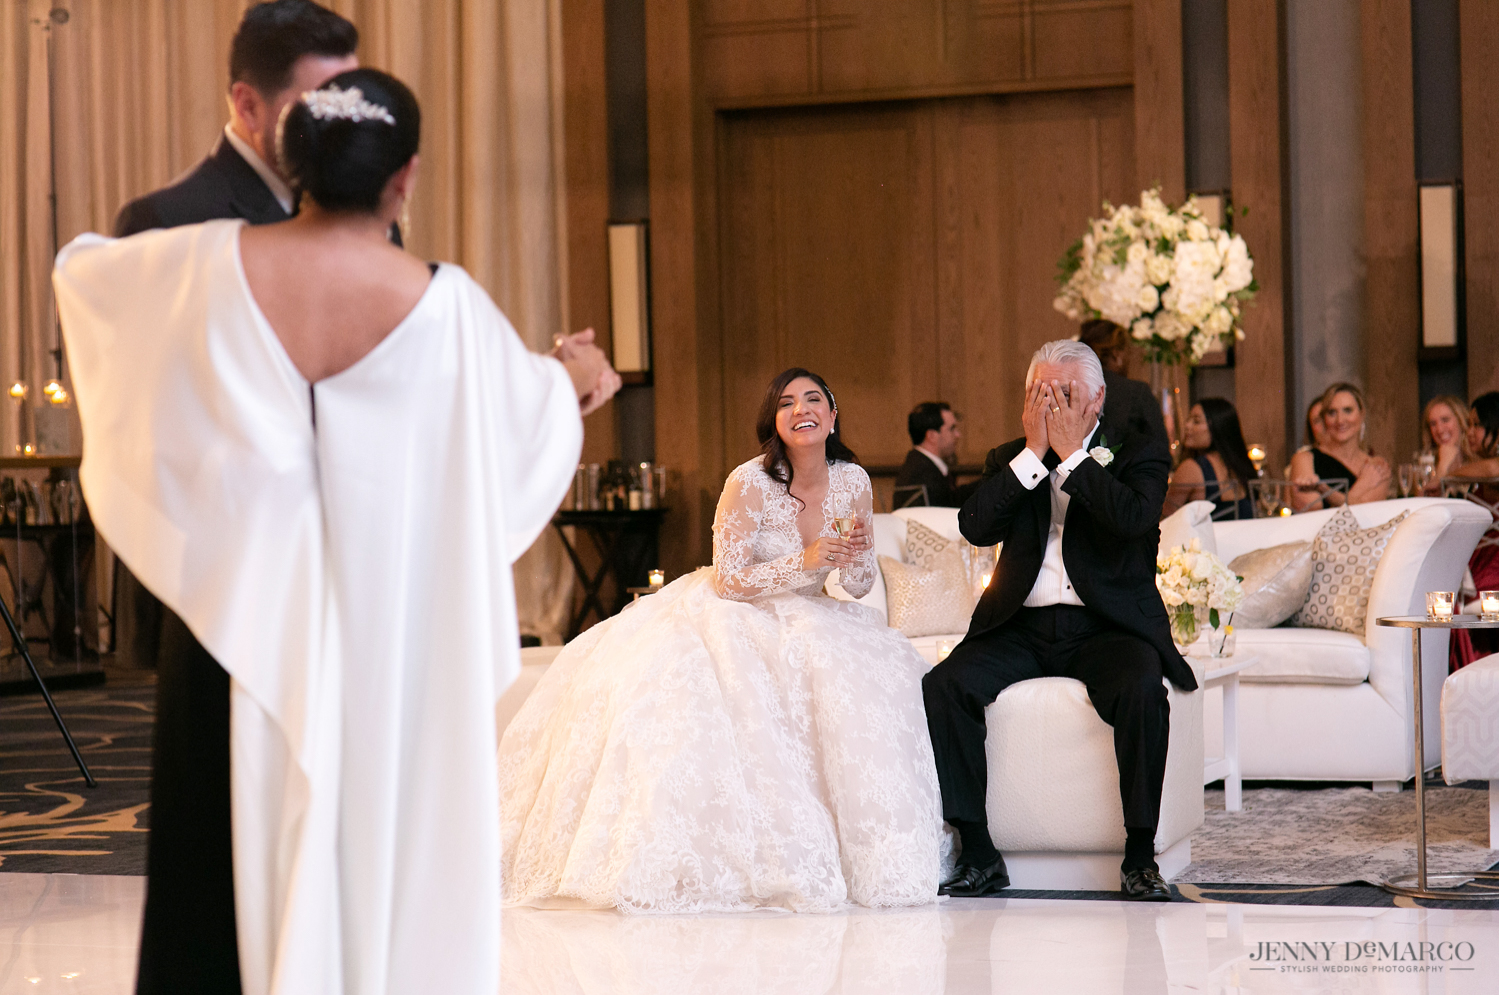 father of the bride making faces as the groom dances with his wife